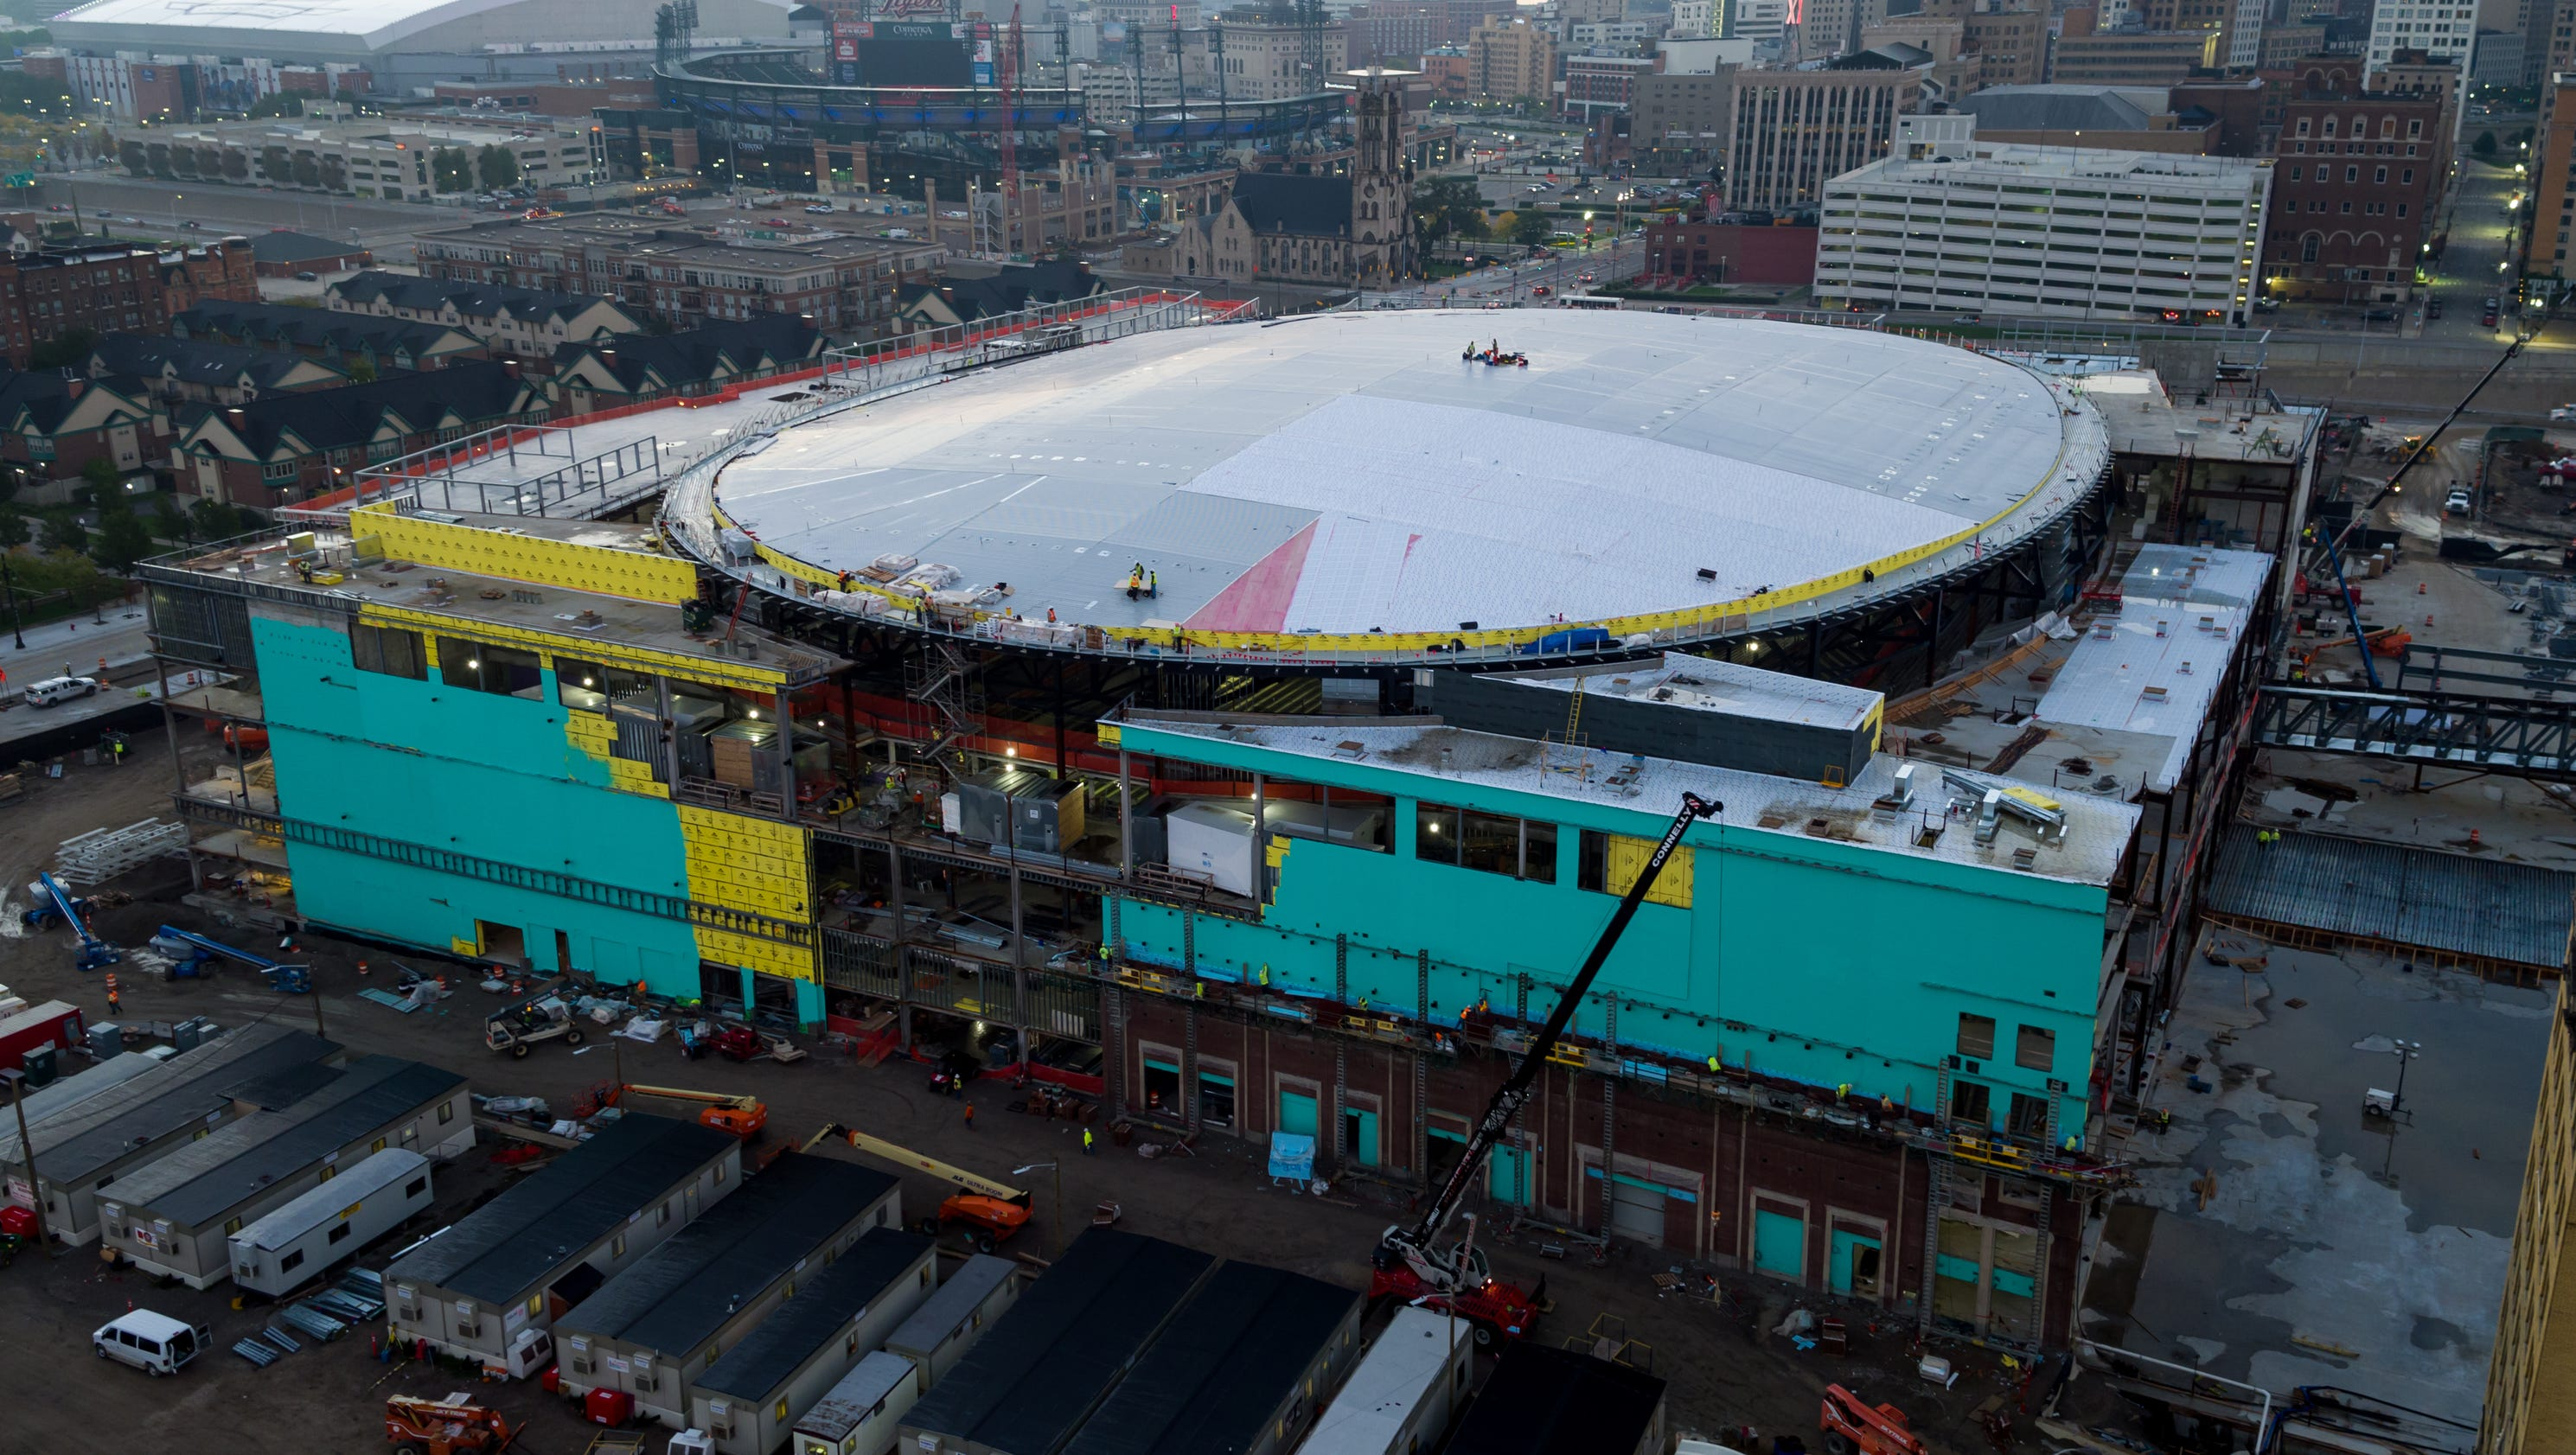 Photos reveal construction progress at Little Caesars Arena